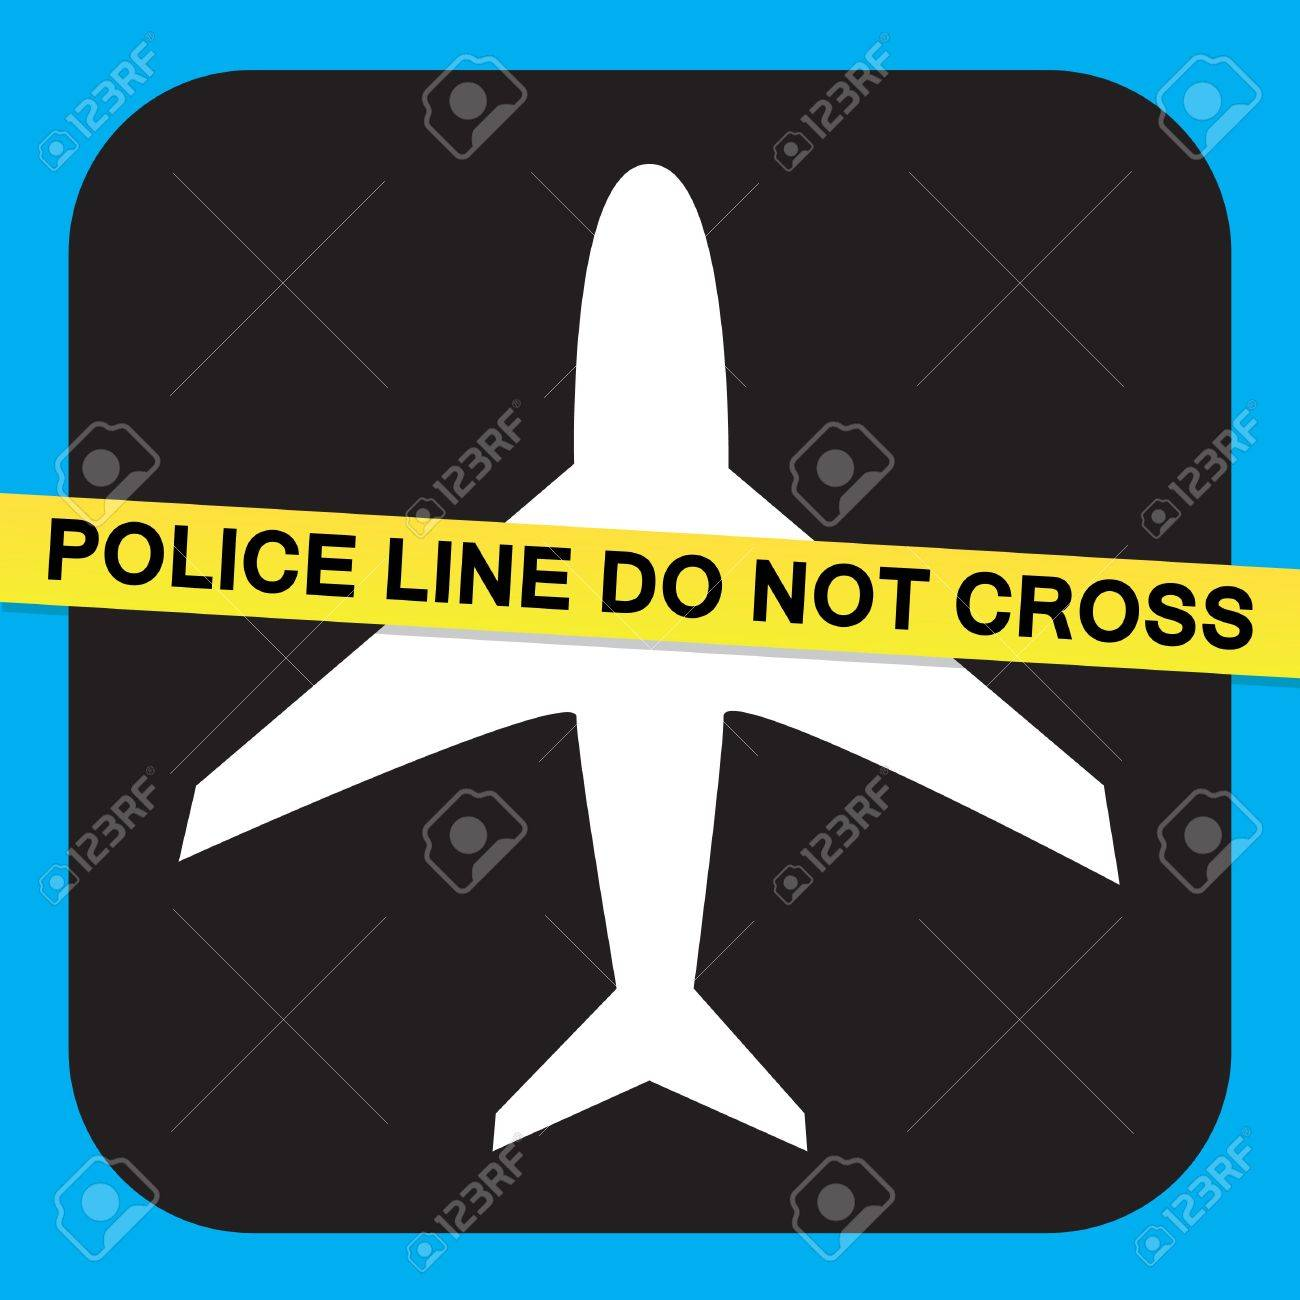 Airport airline security screening illustration relating to terrorist or criminal activity with police tape the says POLICE LINE DO NOT CROSS. Stock Vector - 7054549